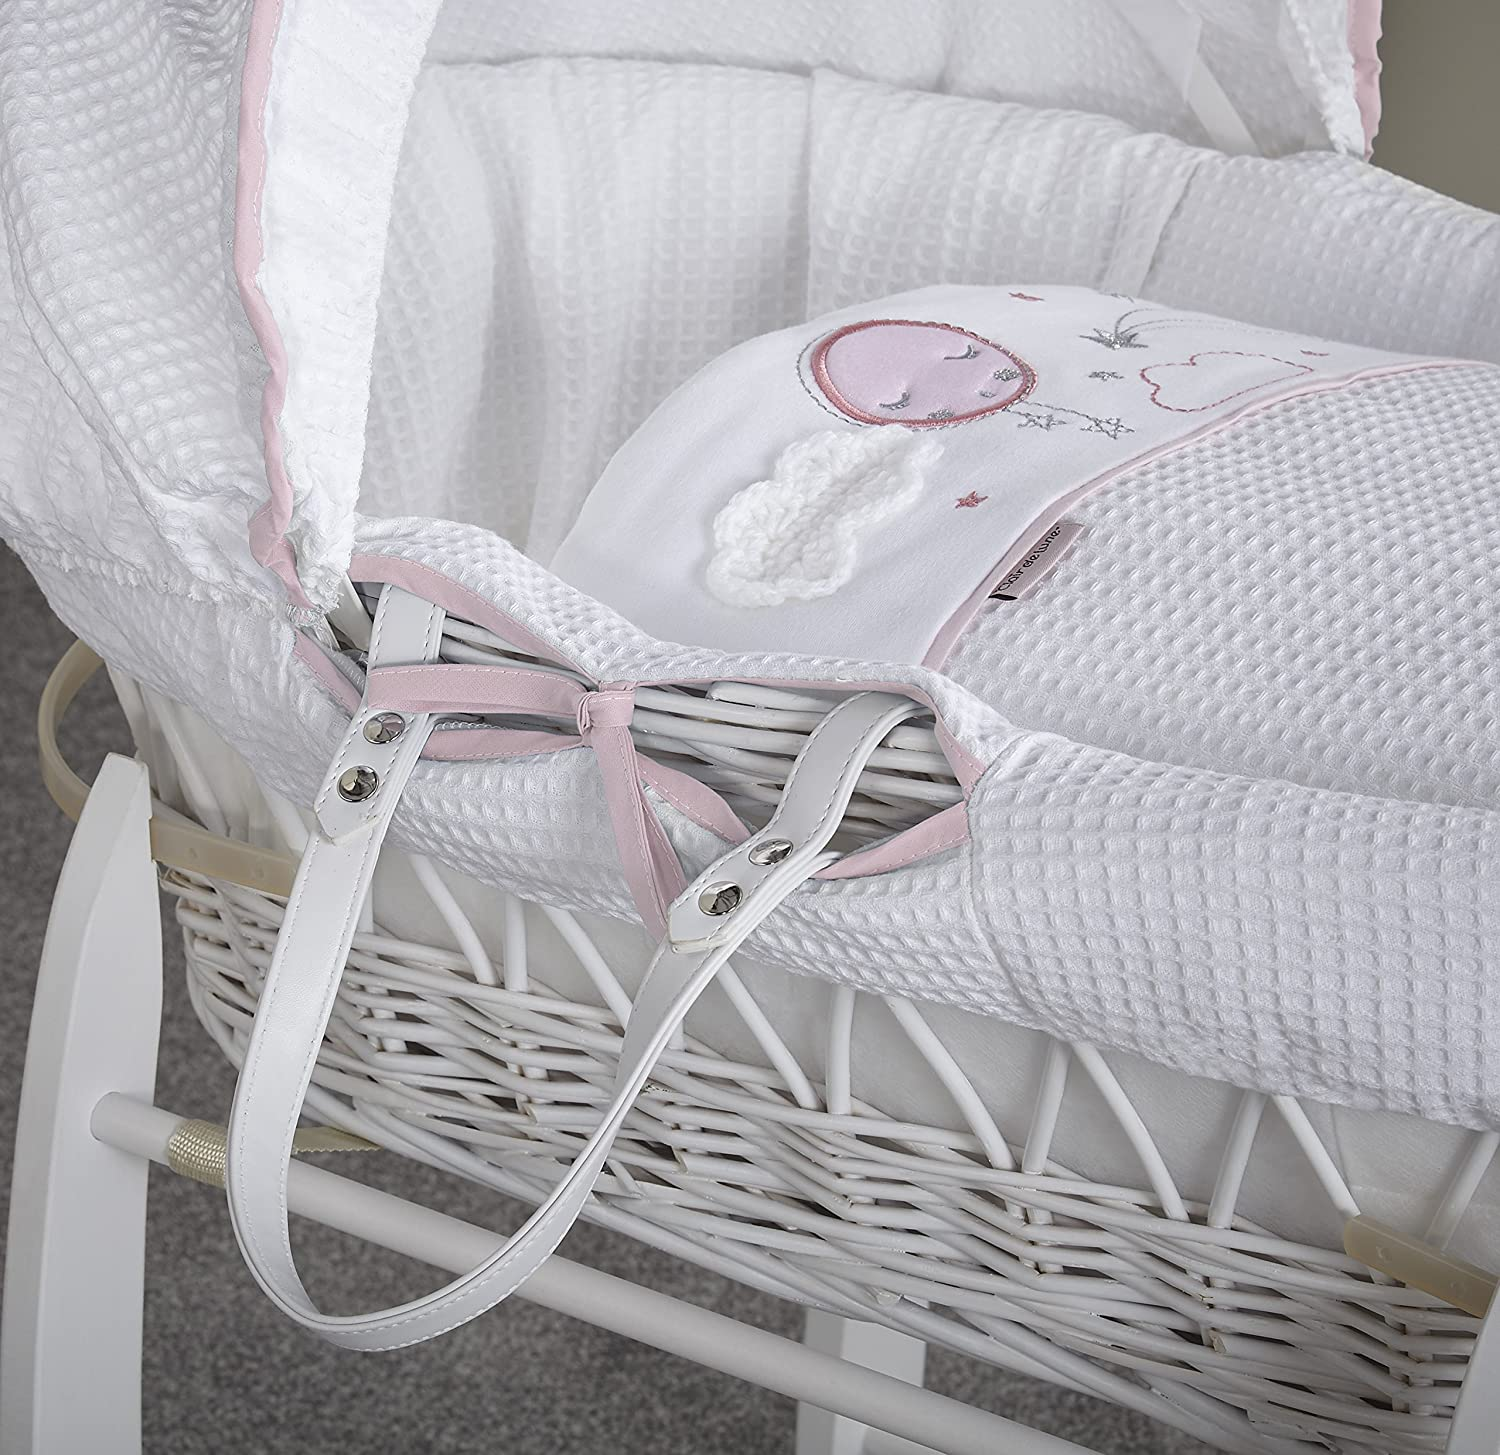 Over The Moon Pink//White Clair de Lune Wicker Moses Basket